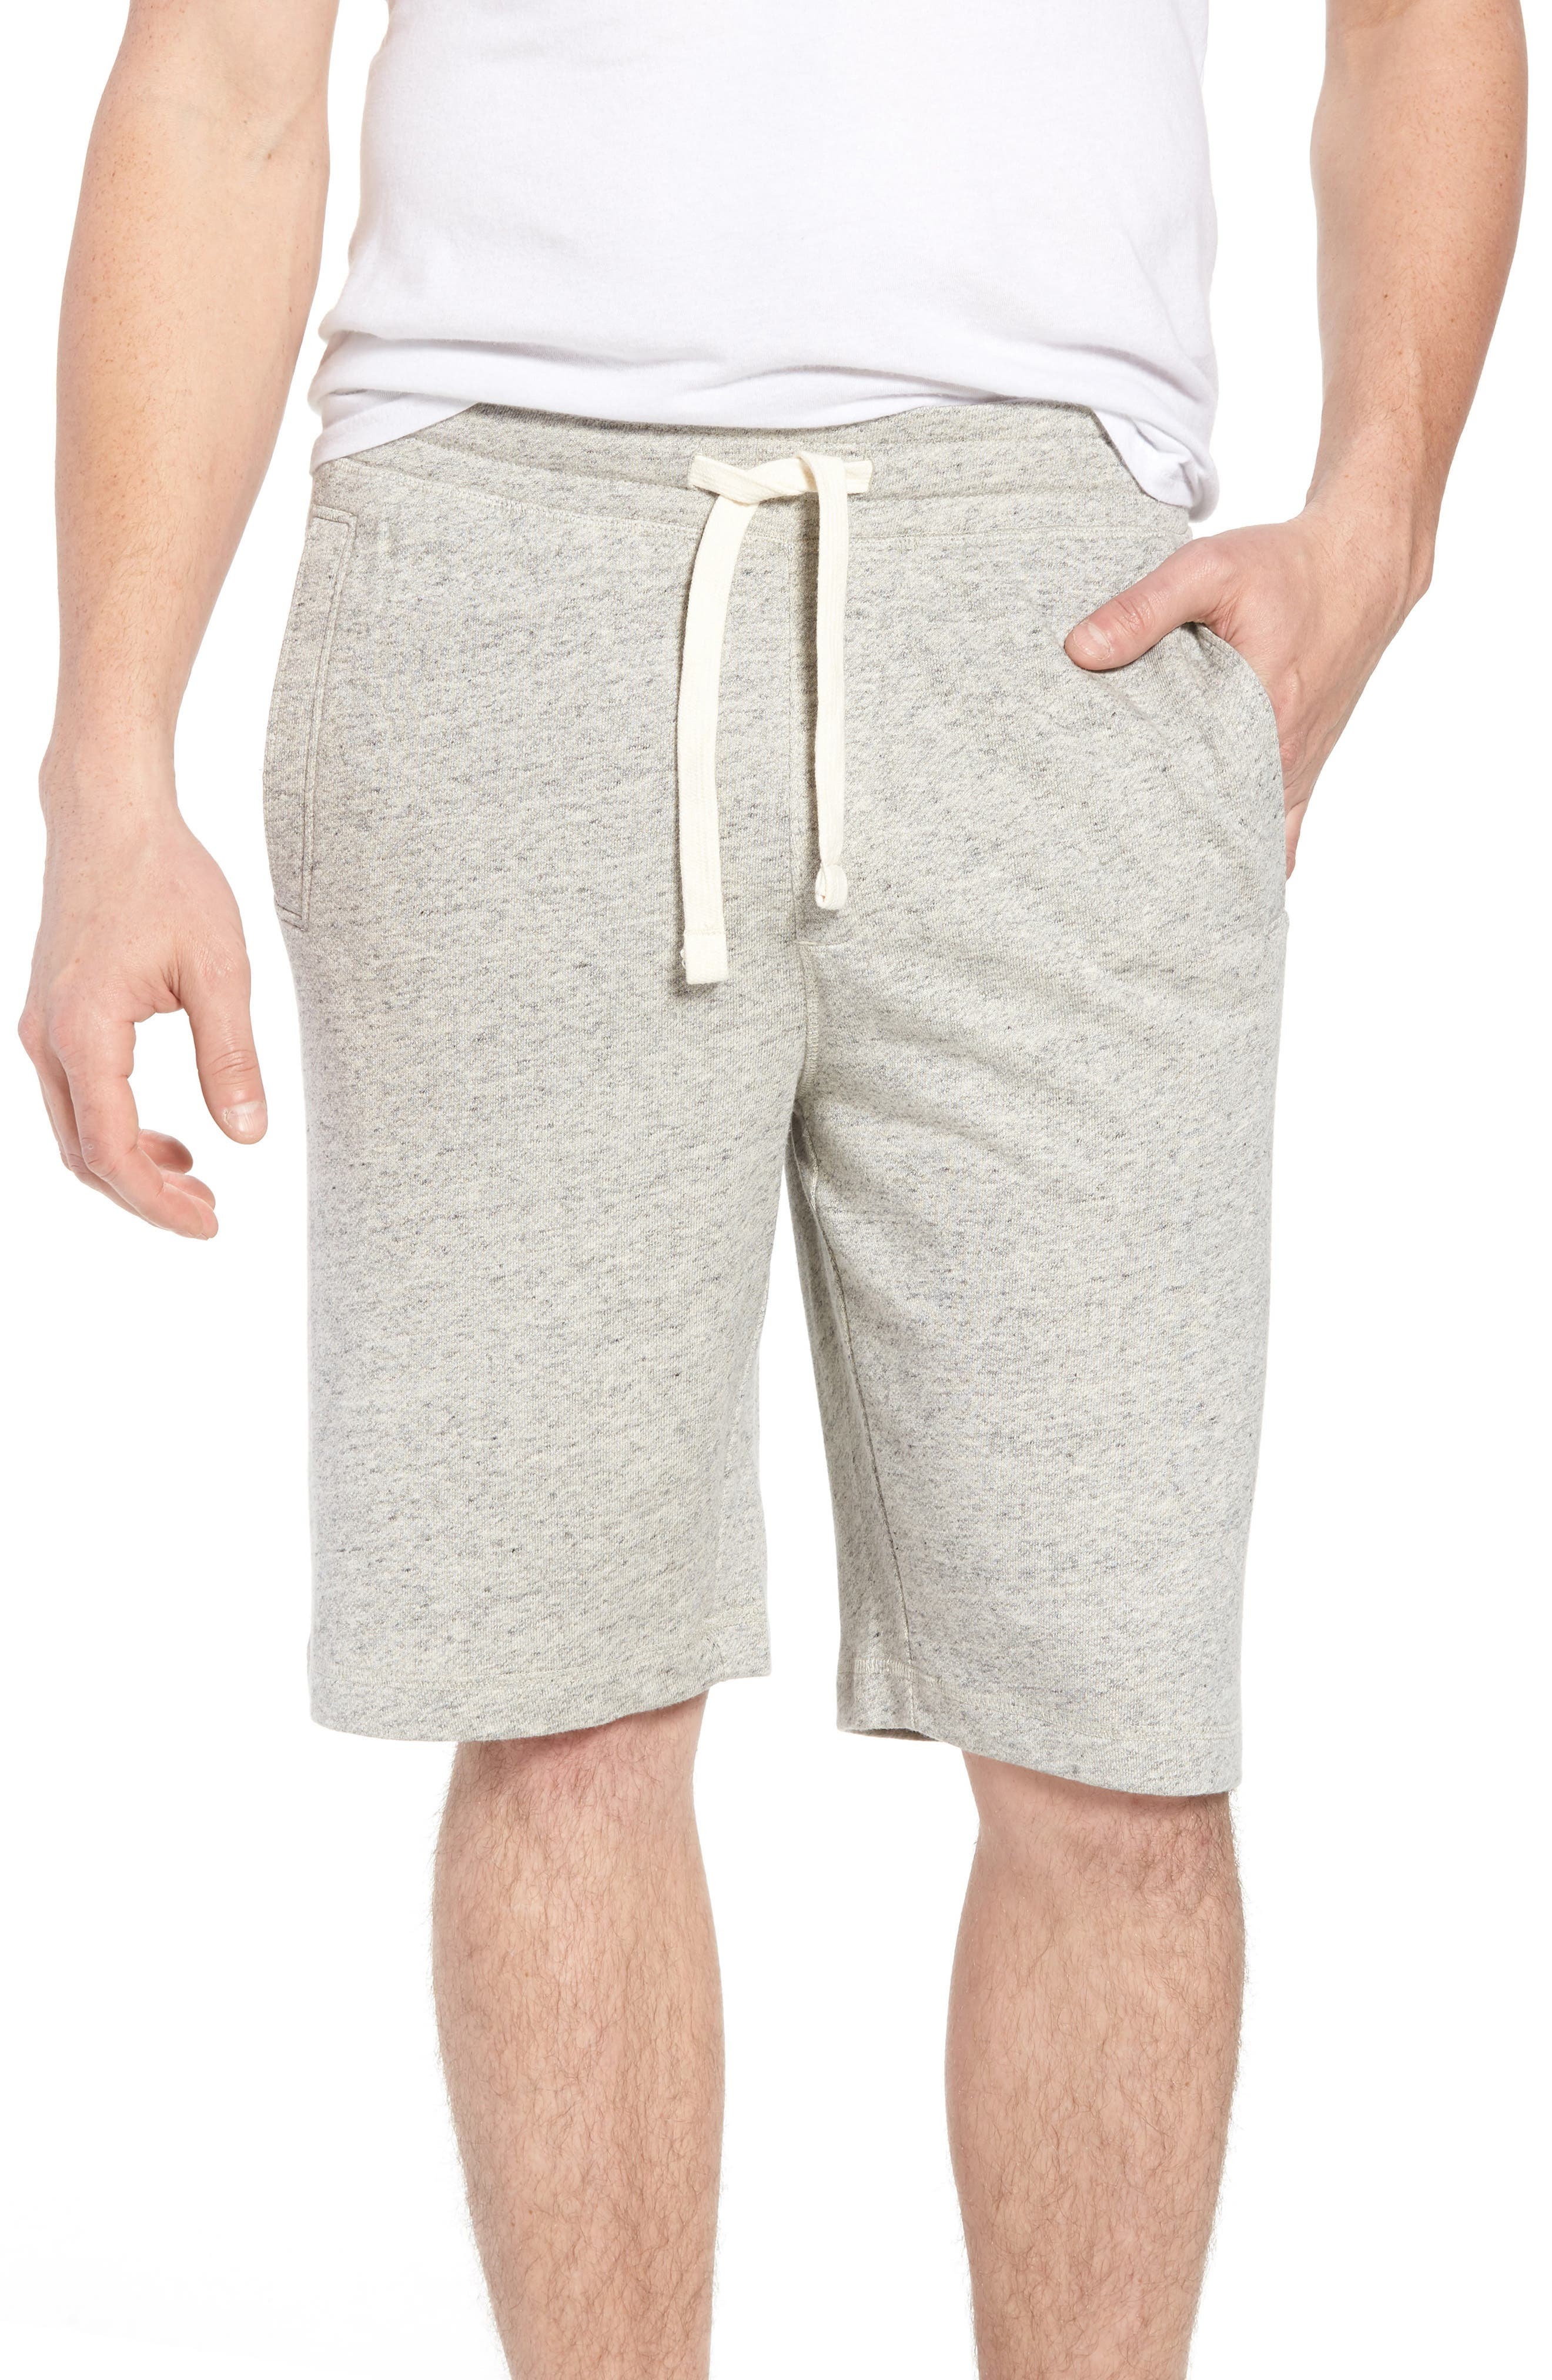 Alternate Image 1 Selected - Tailor Vintage Stretch Cotton Terry Shorts